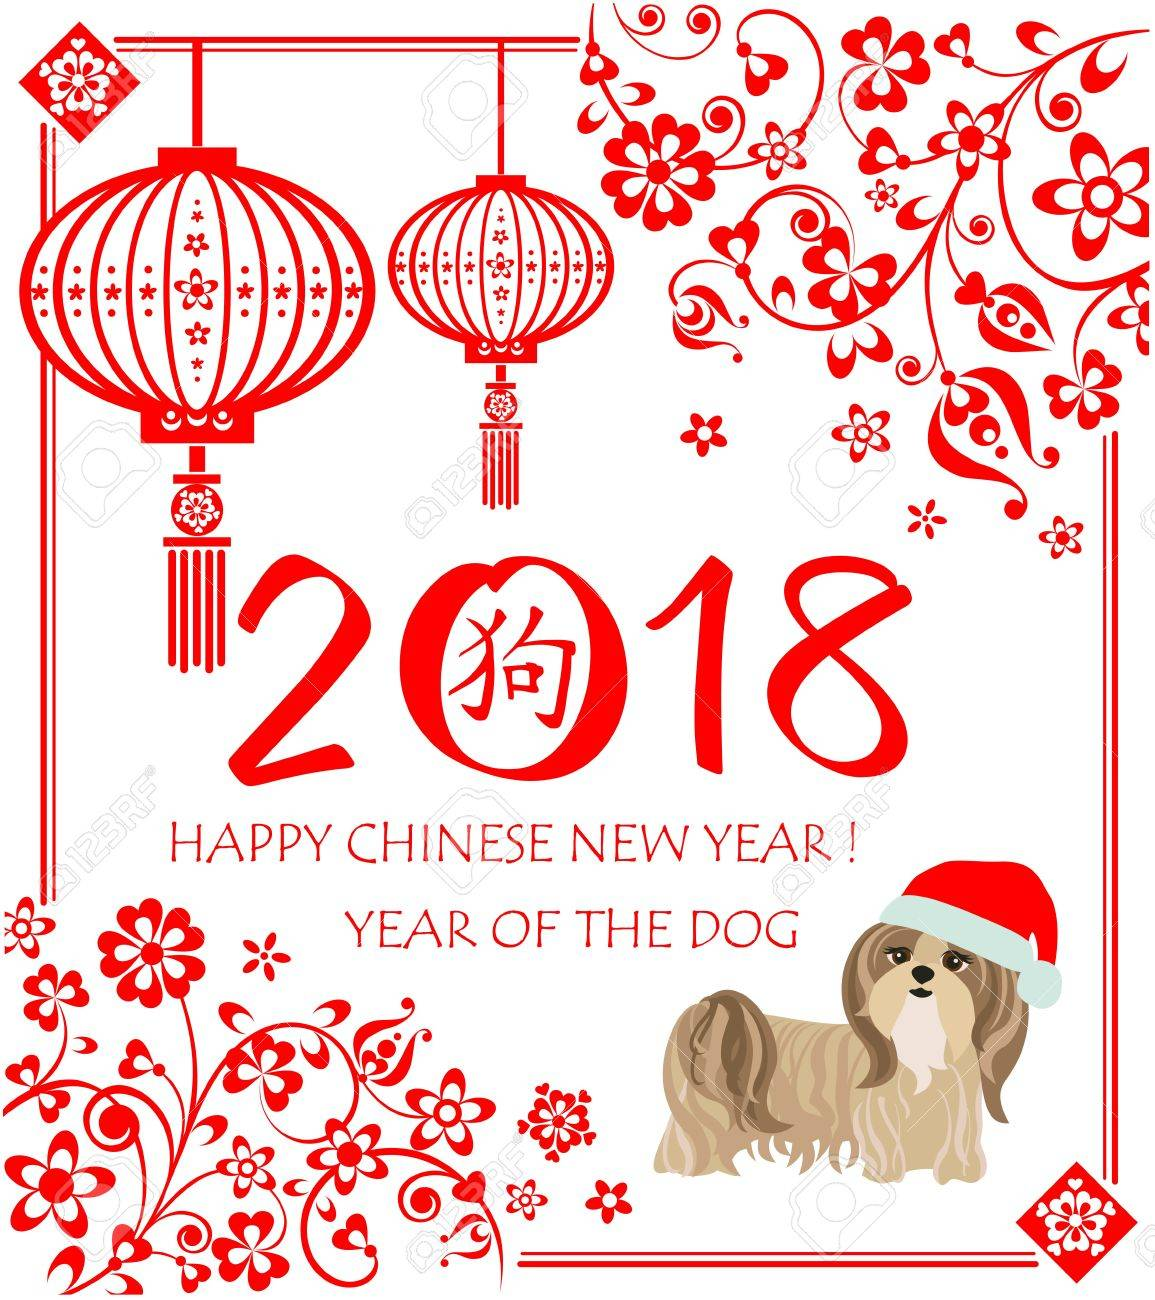 Gruß Applique Für 2018 Chinese New Year Mit Dekorativen Floralen ...